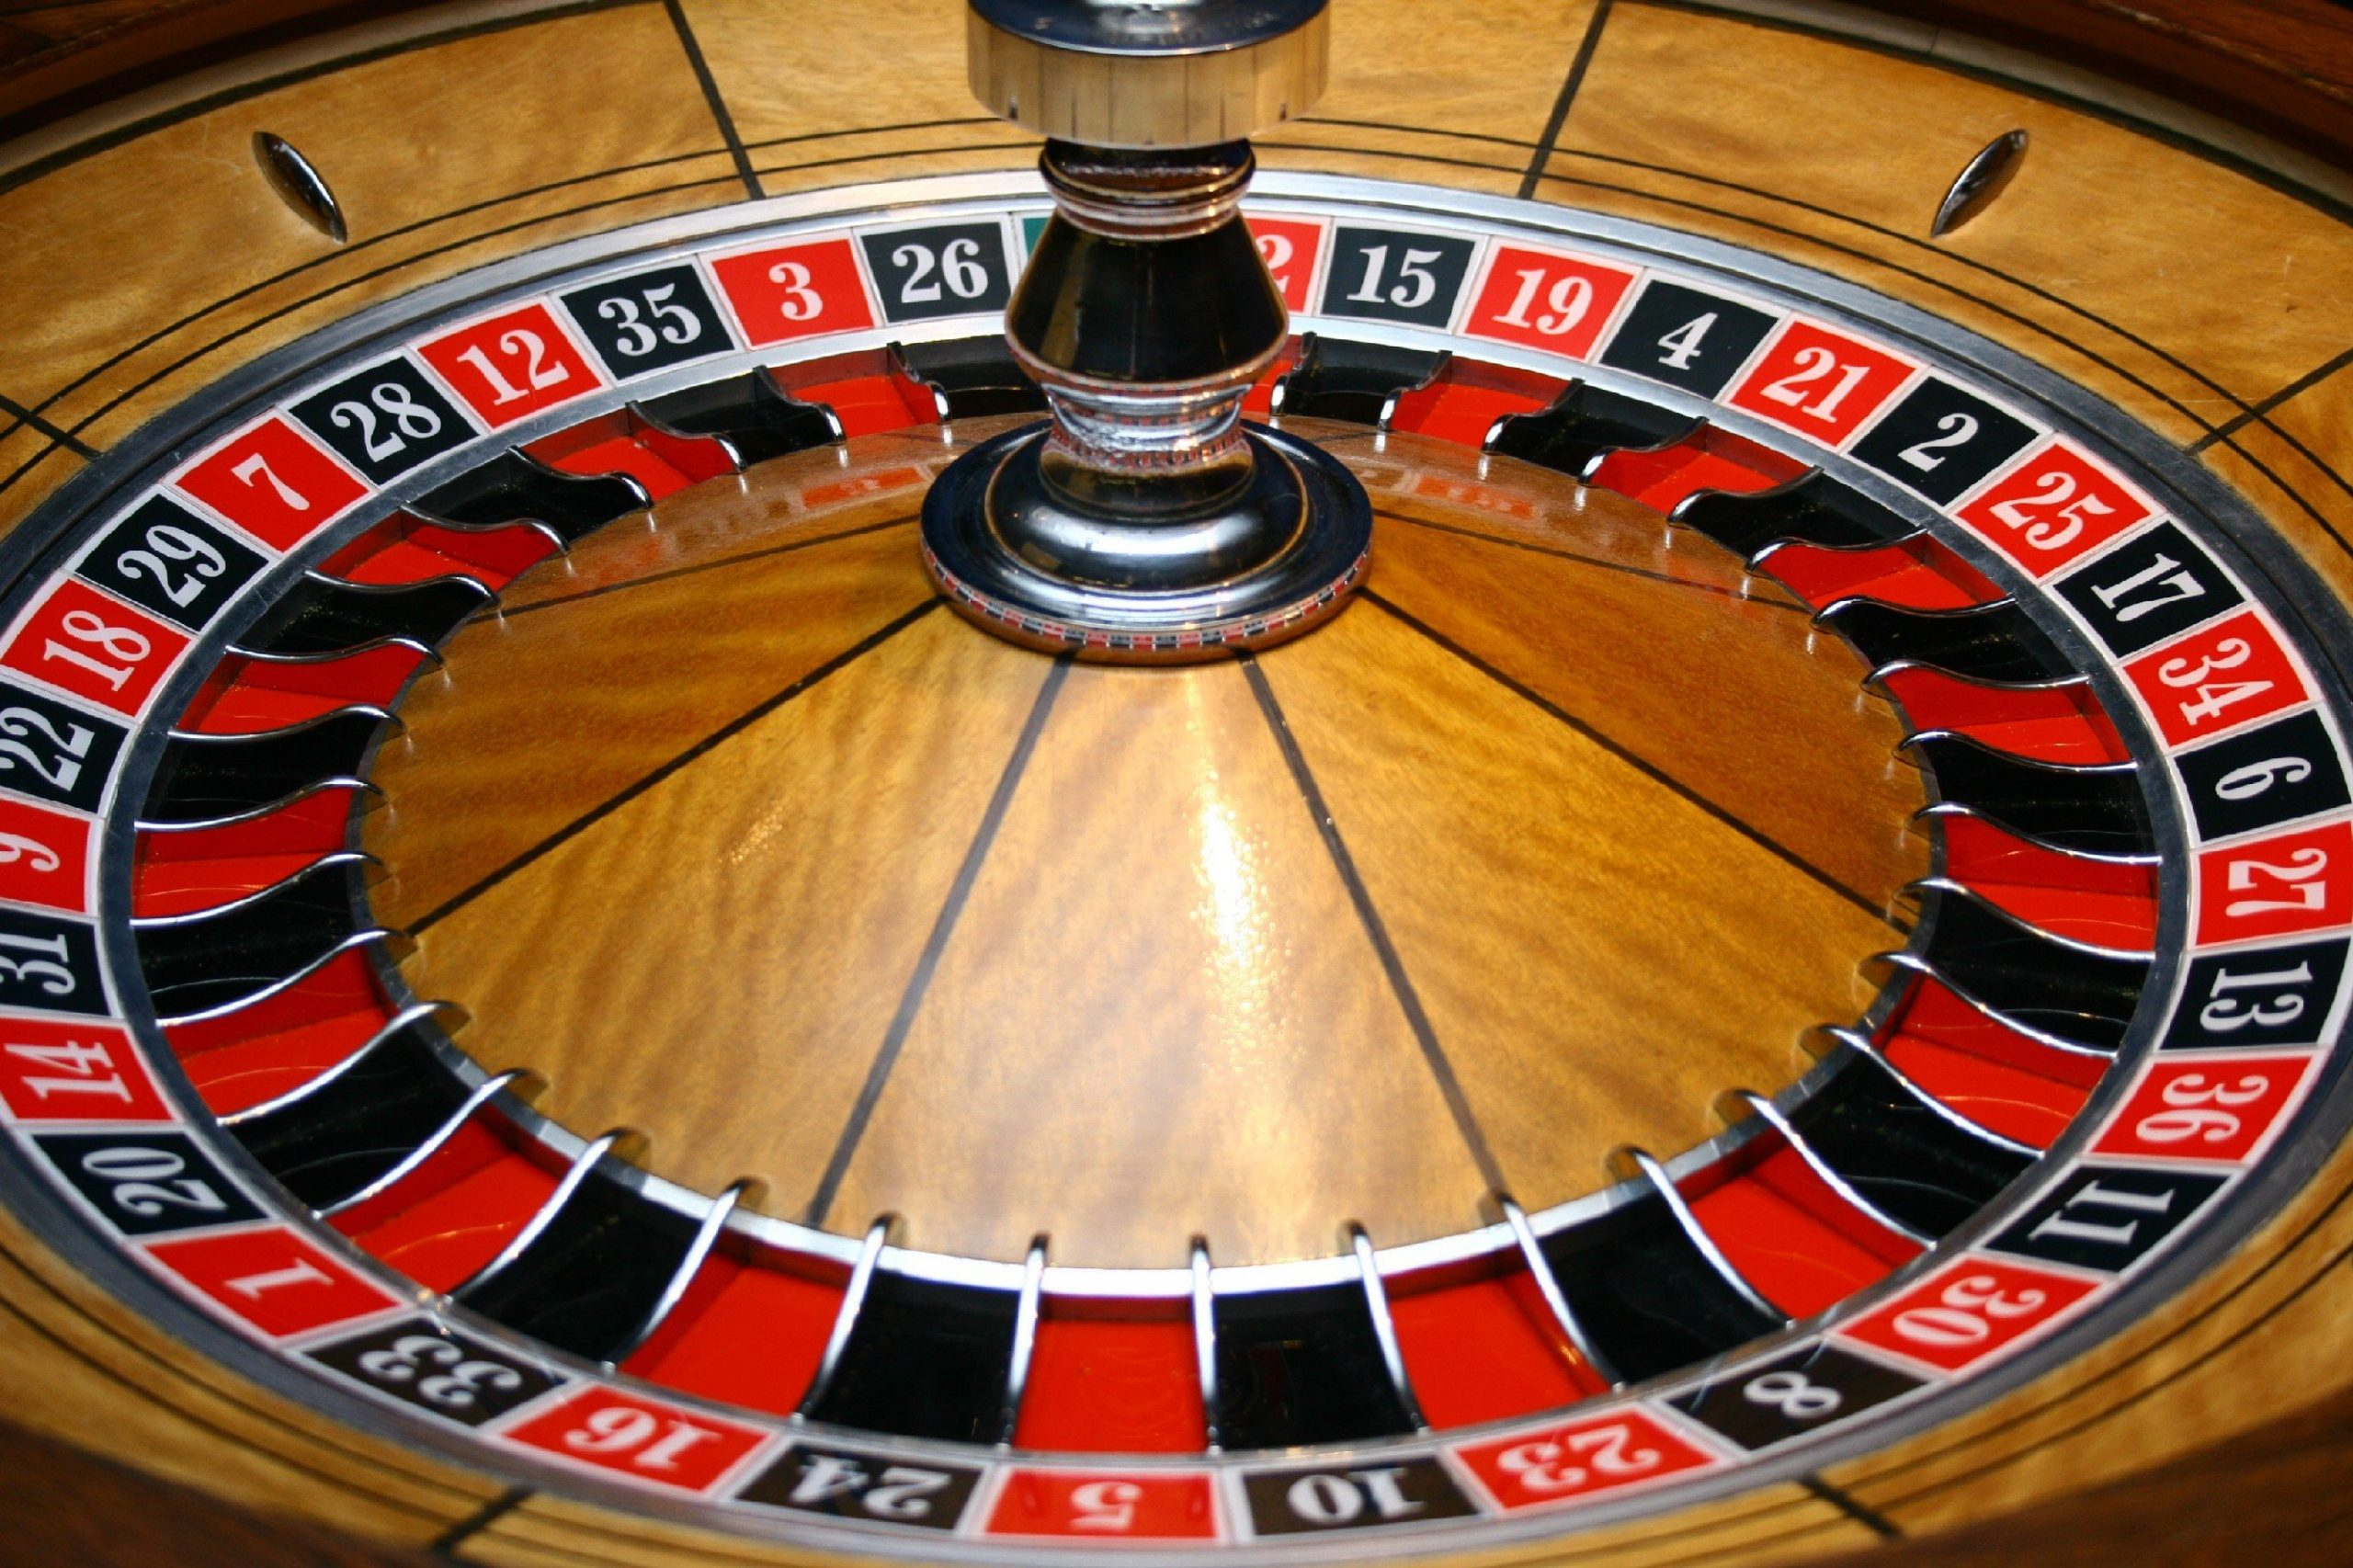 Guide To Sports Betting, Casino Games, & More!